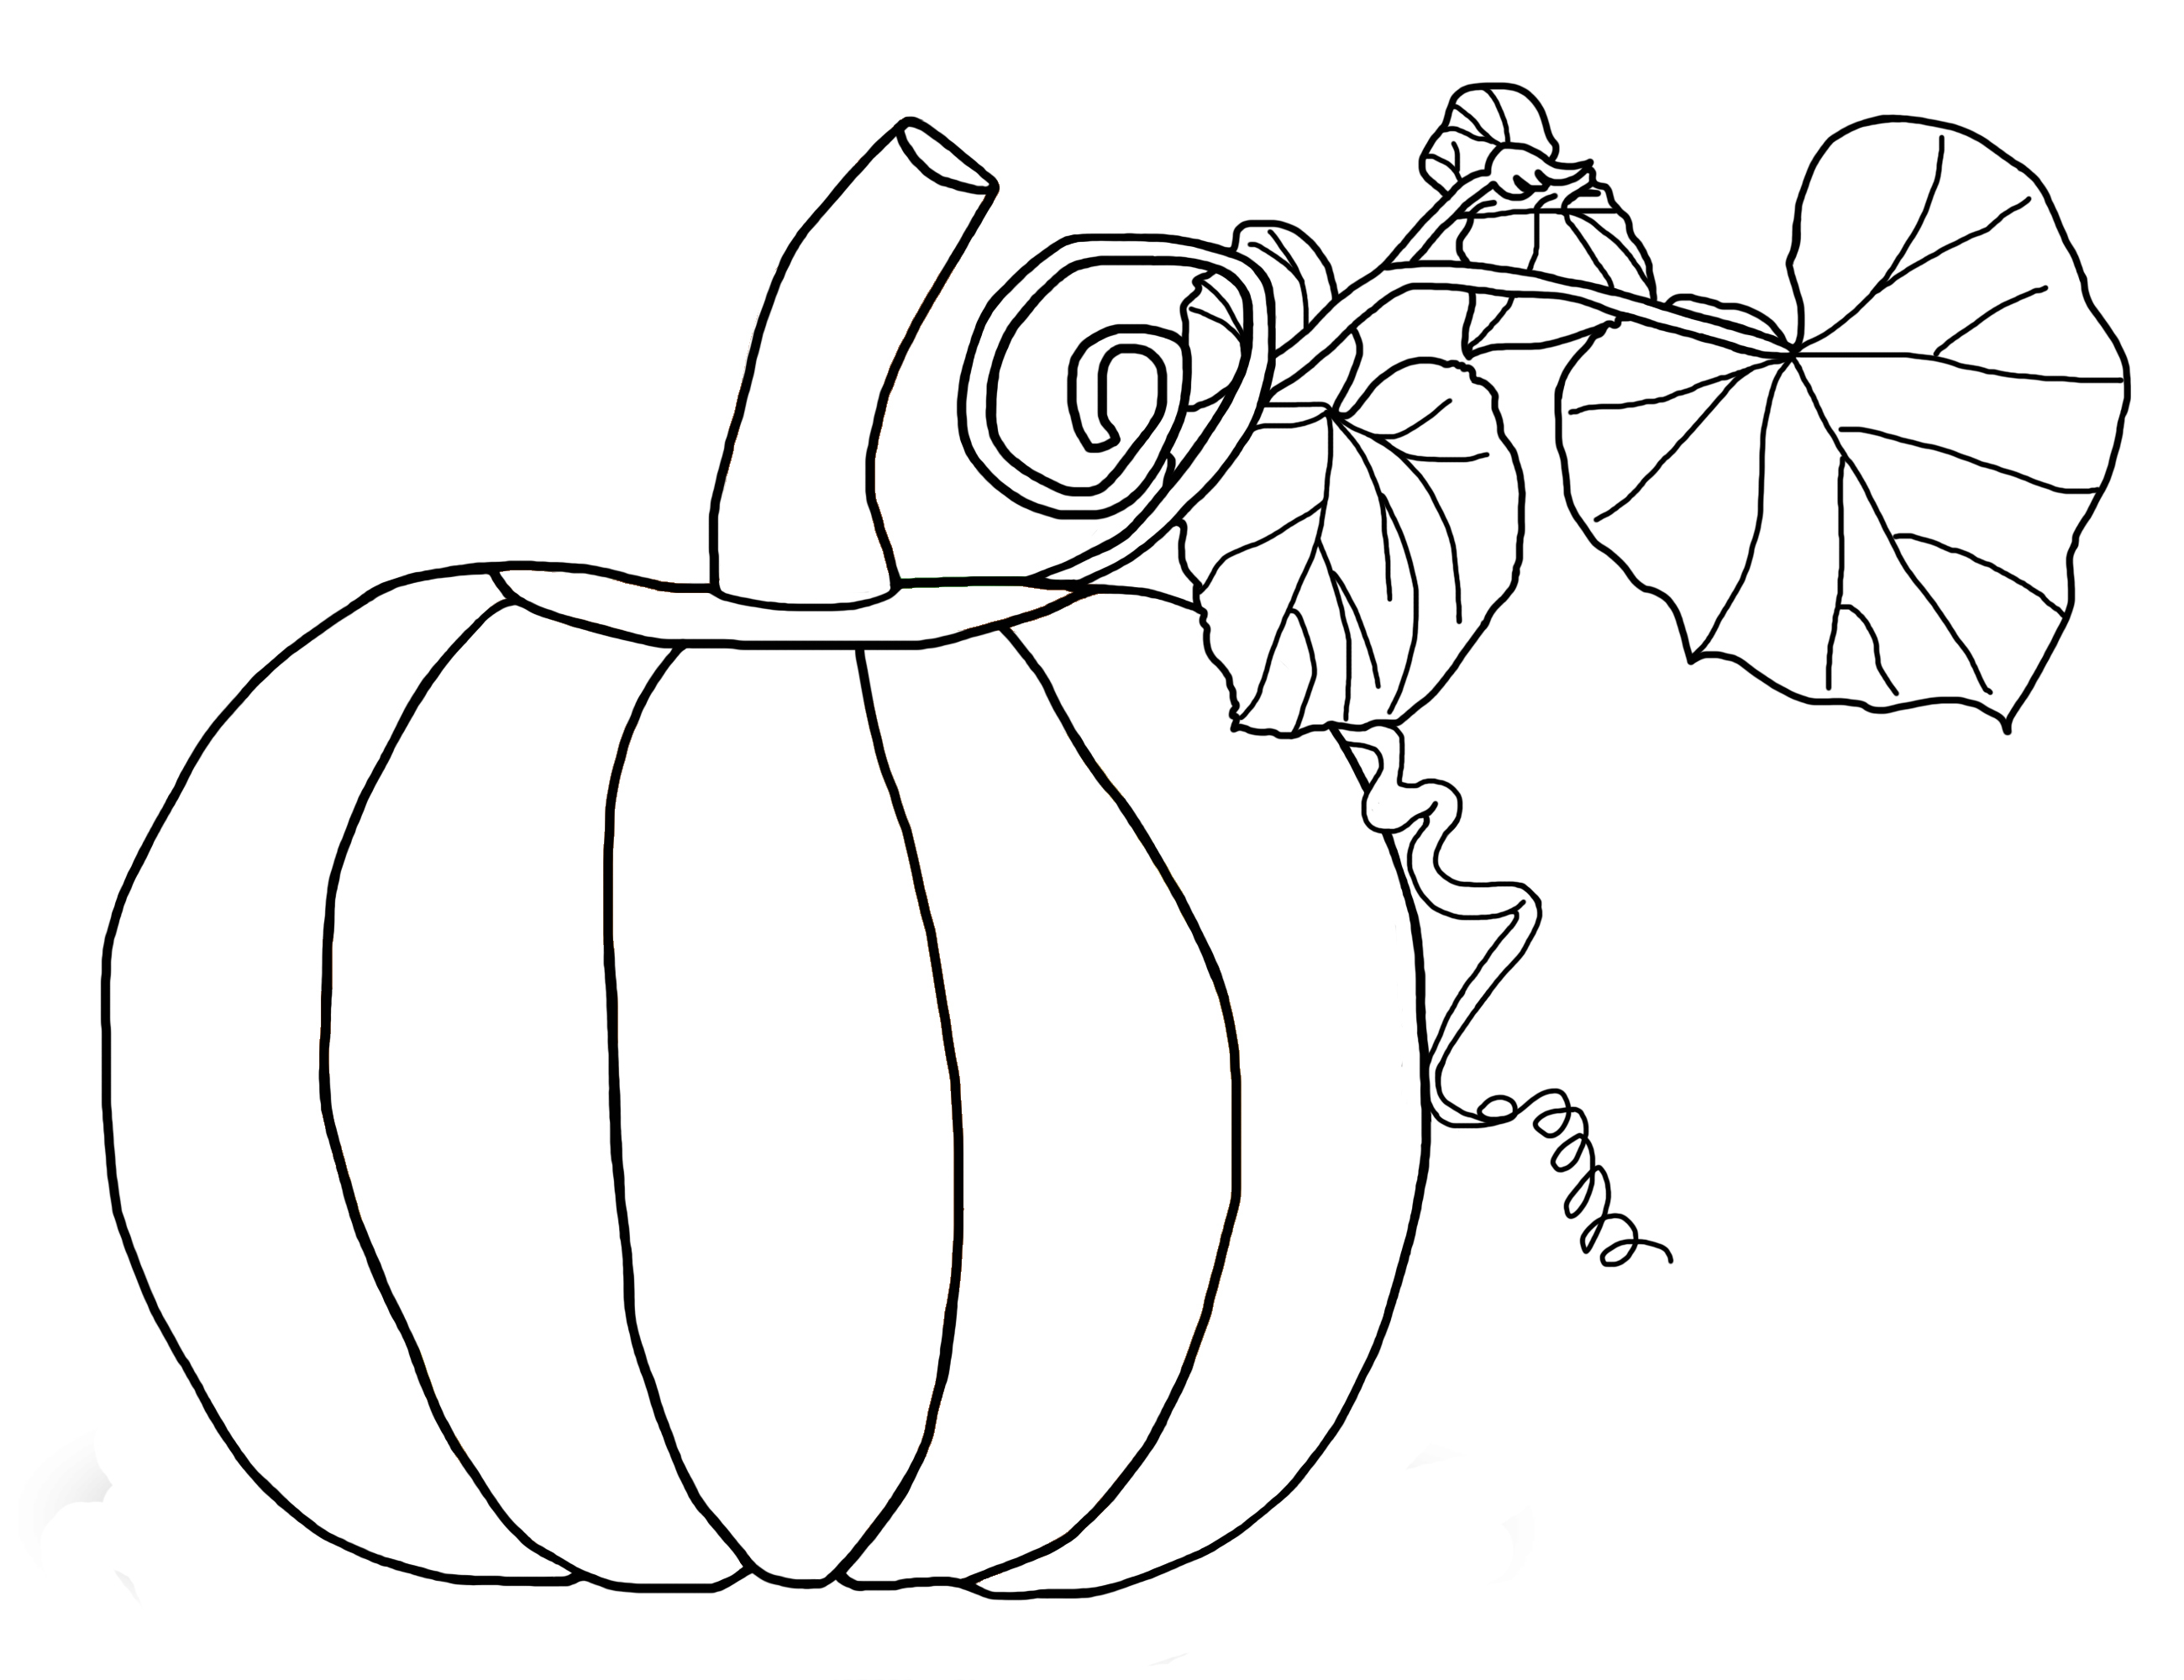 Drawn pumpkin color for kid Pages Coloring Printable Free Page